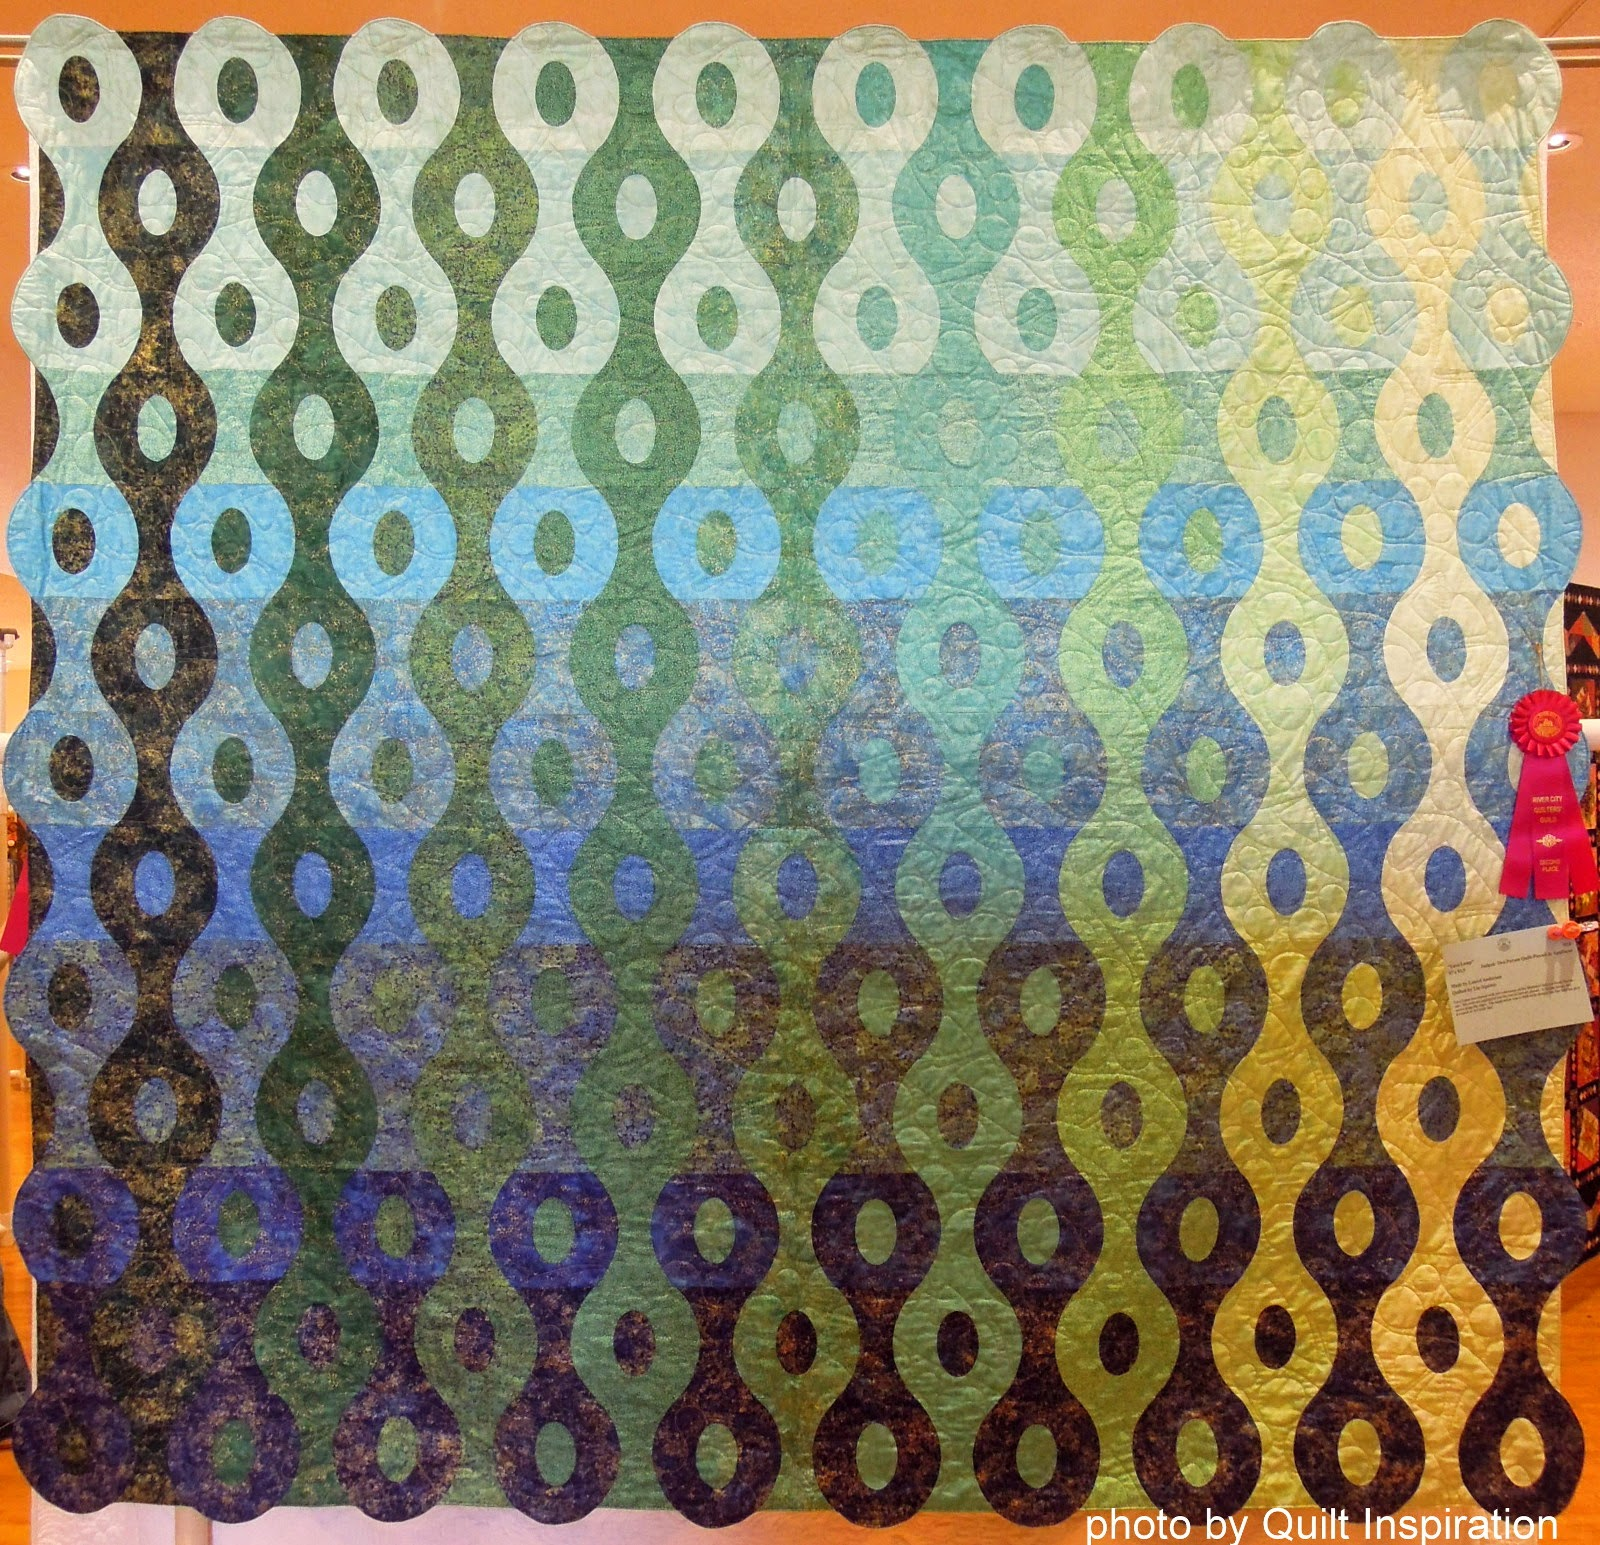 Quilt Inspiration: Welcome to the 2014 River City Quilters' Guild ...